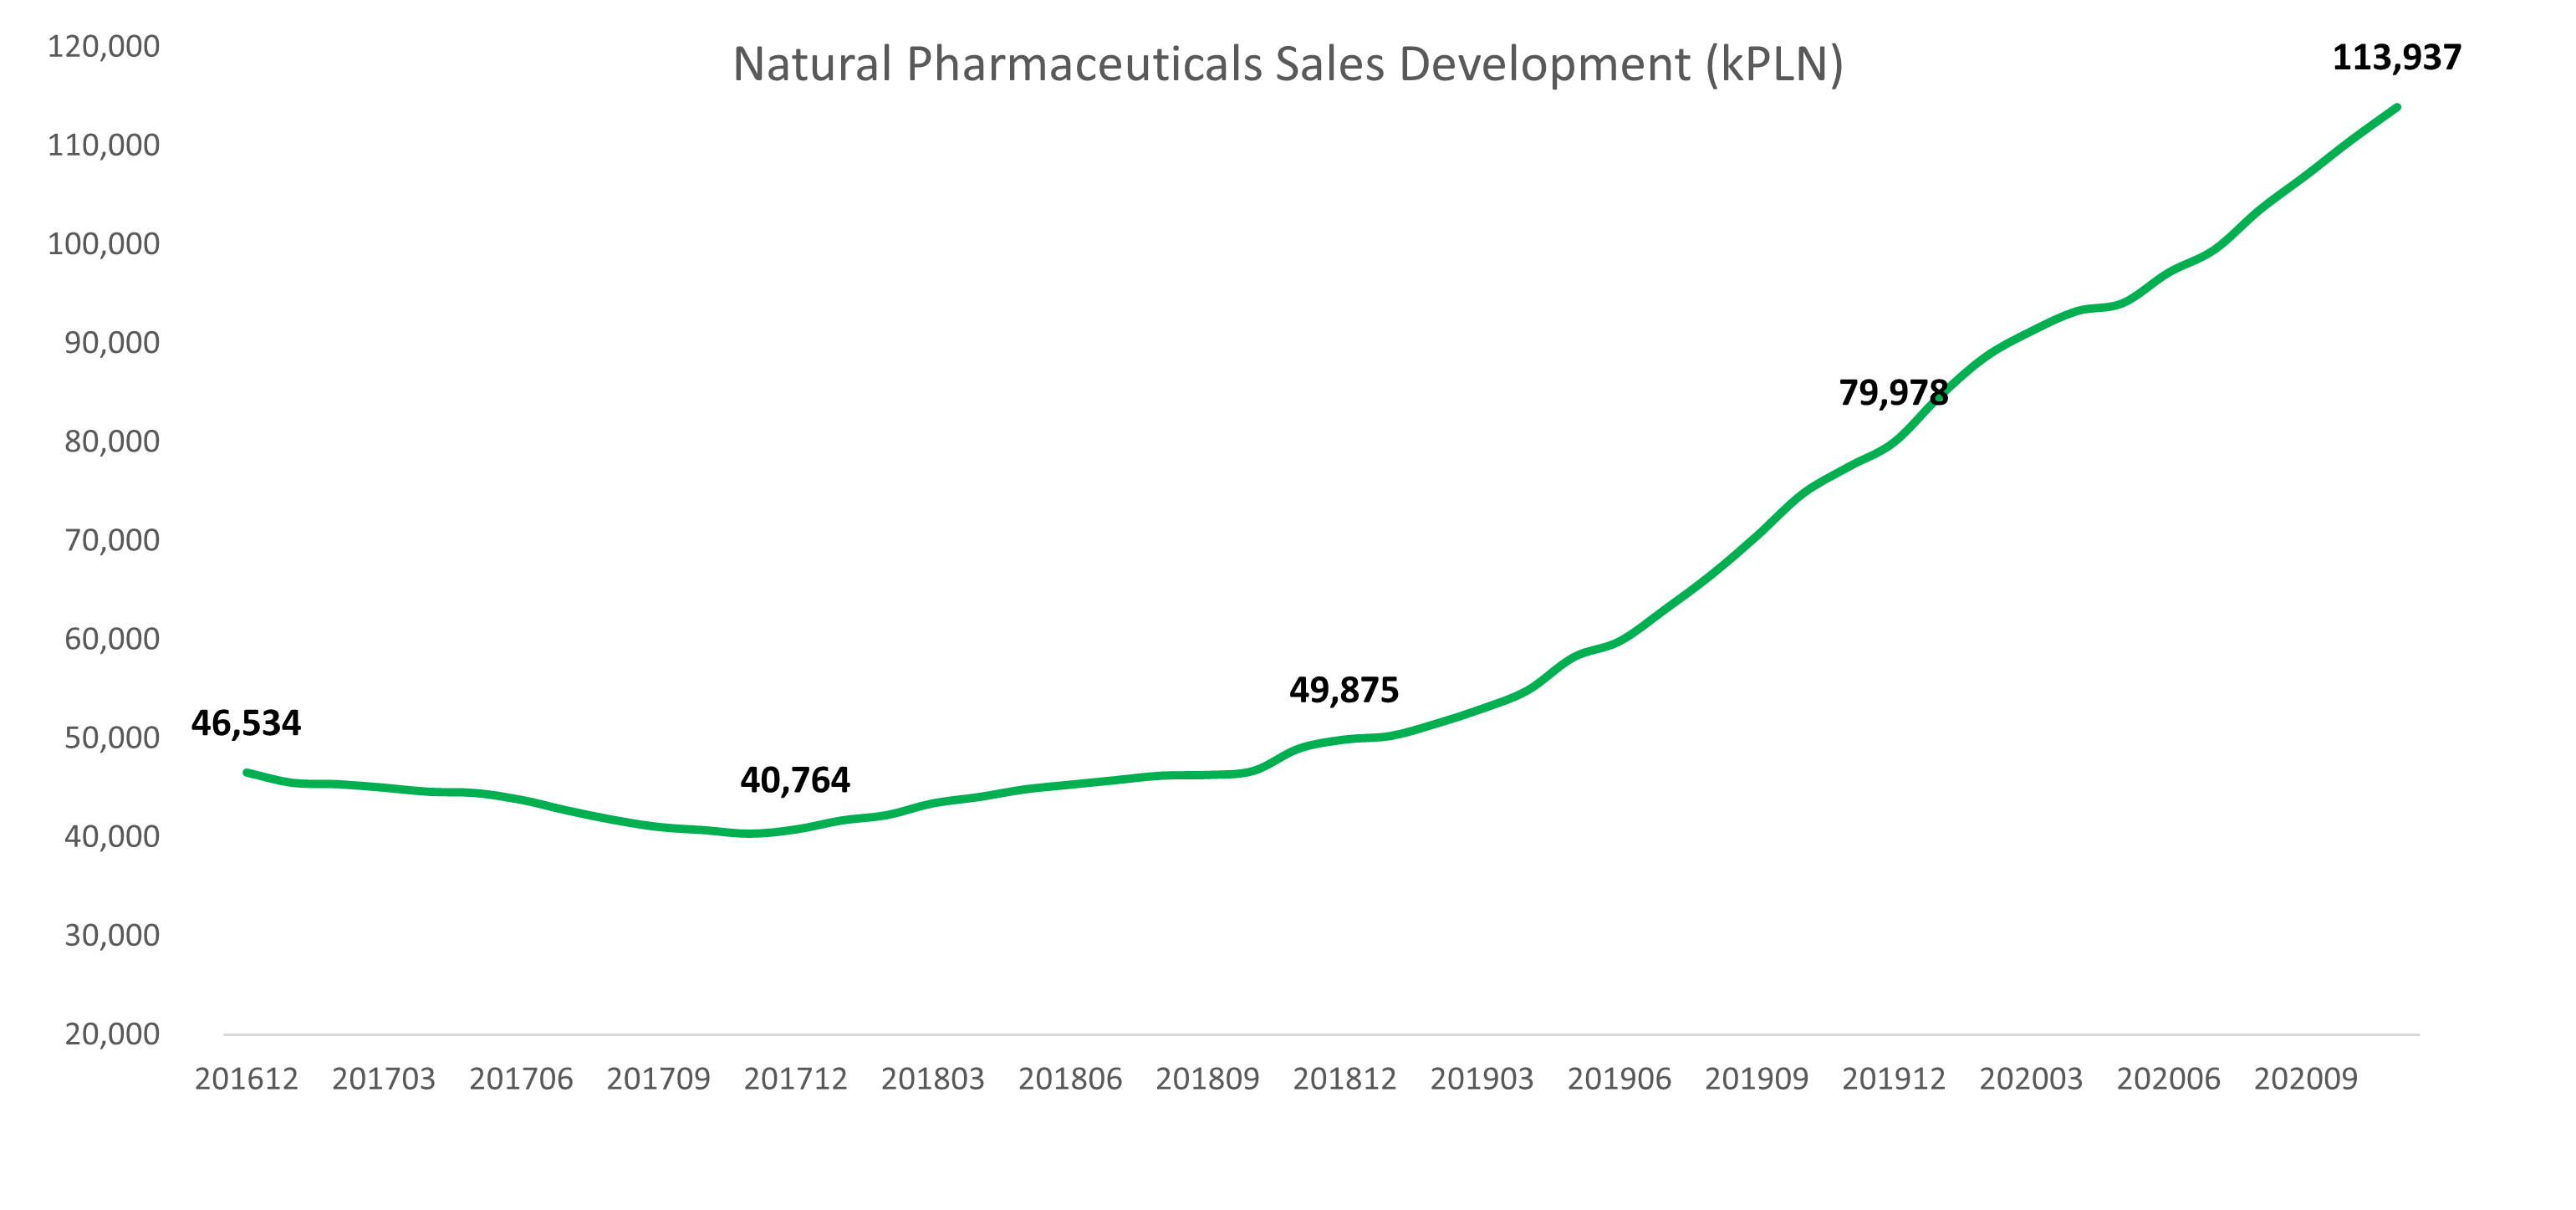 Natural Pharmaceuticals Sales